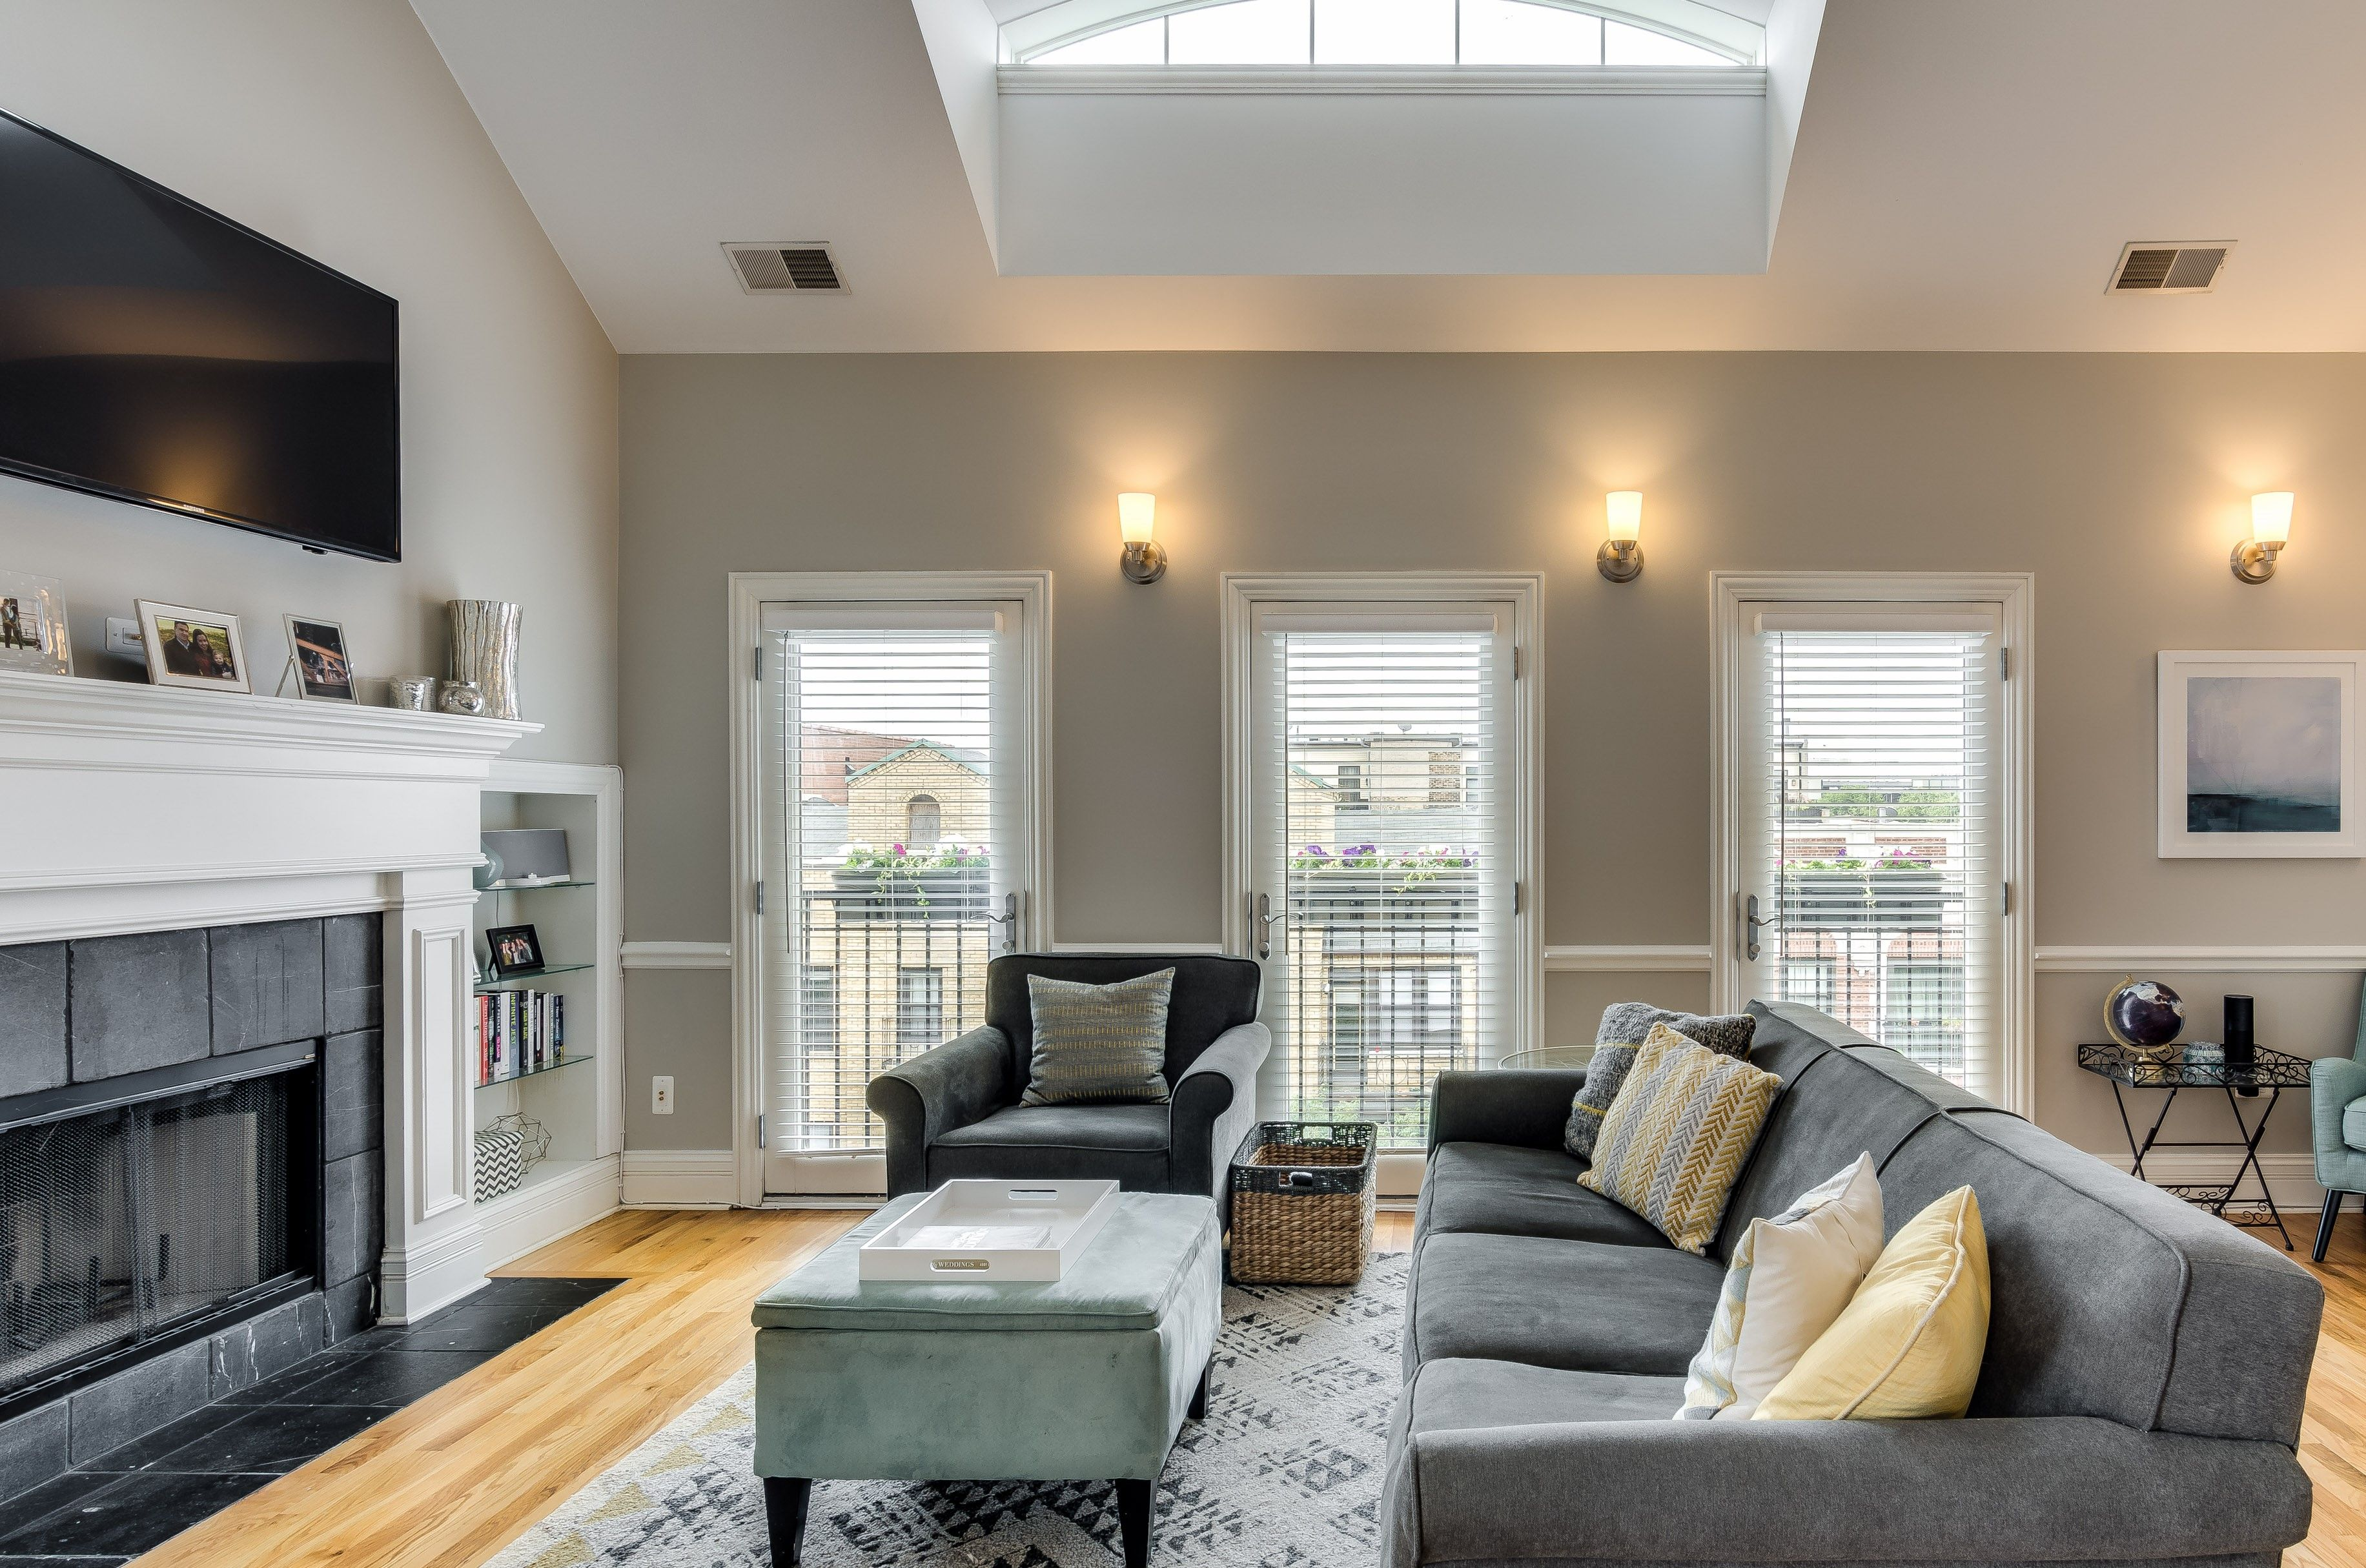 Vaulted cathedral ceilings with skylights in penthouse